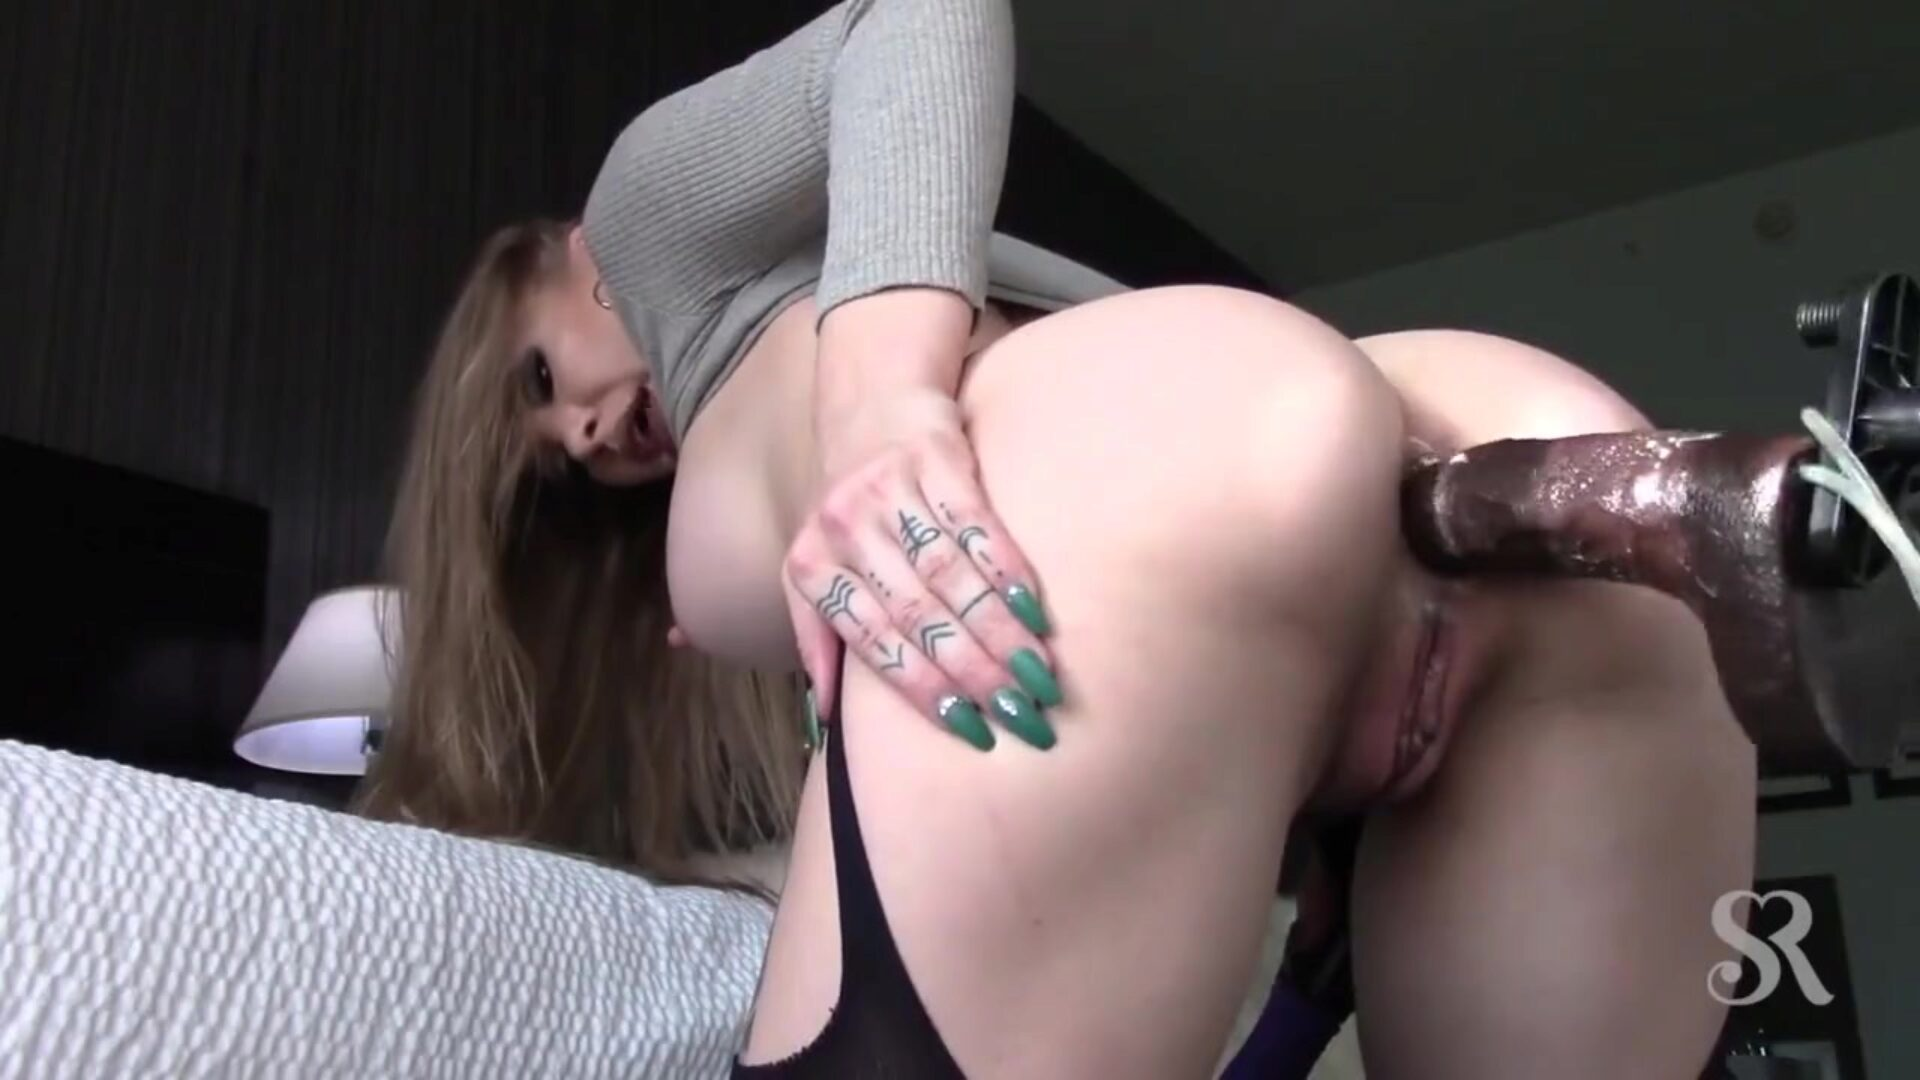 Hard Ass Fuck with Sex Machine Big Anal Gape